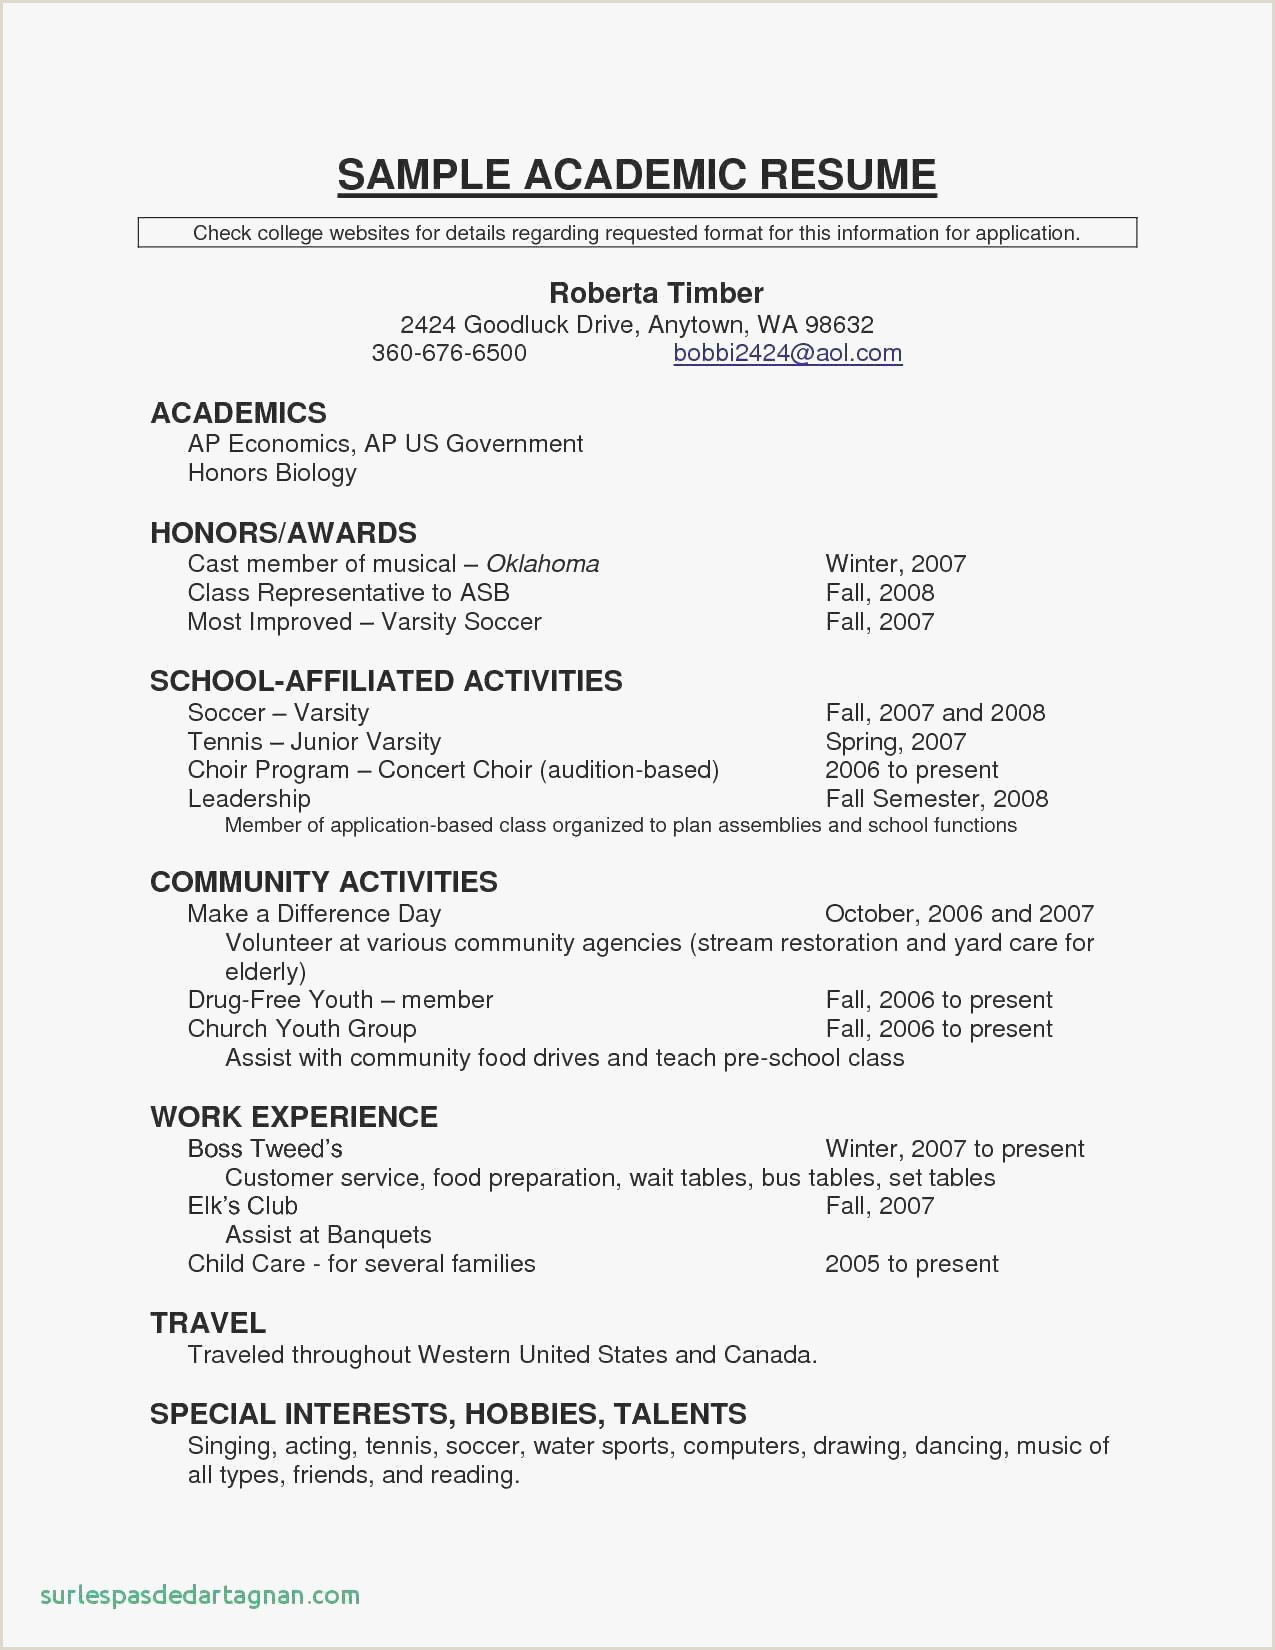 Sports Photo Templates Resumes with Templates New Resume Sample Edu Valid